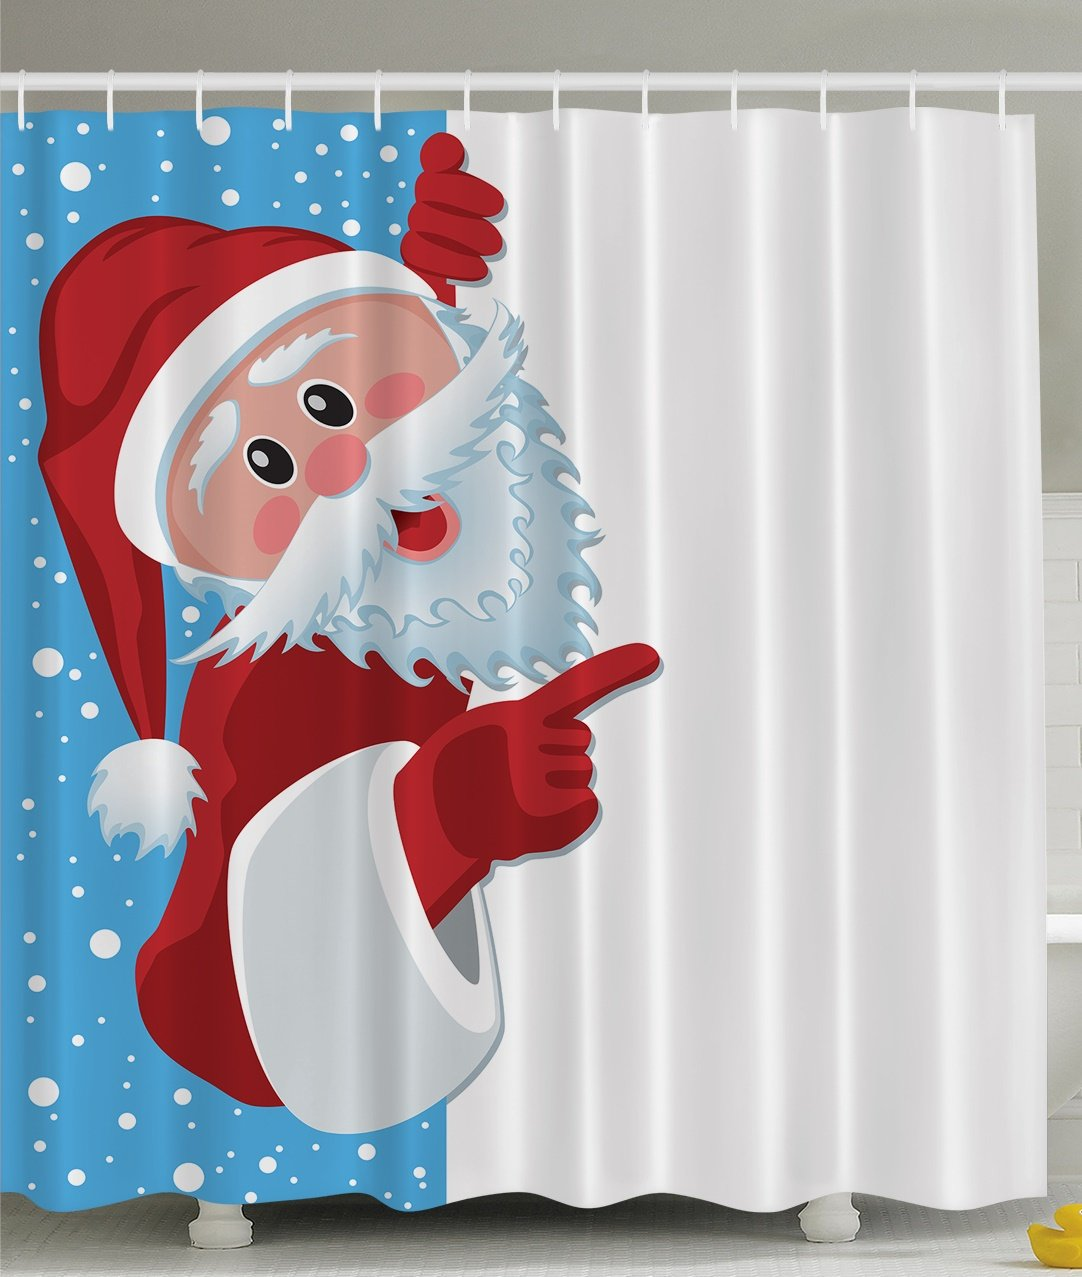 Christmas Santa Claus Holiday New Year Print Polyester Fabric Shower Curtain Blue White Red